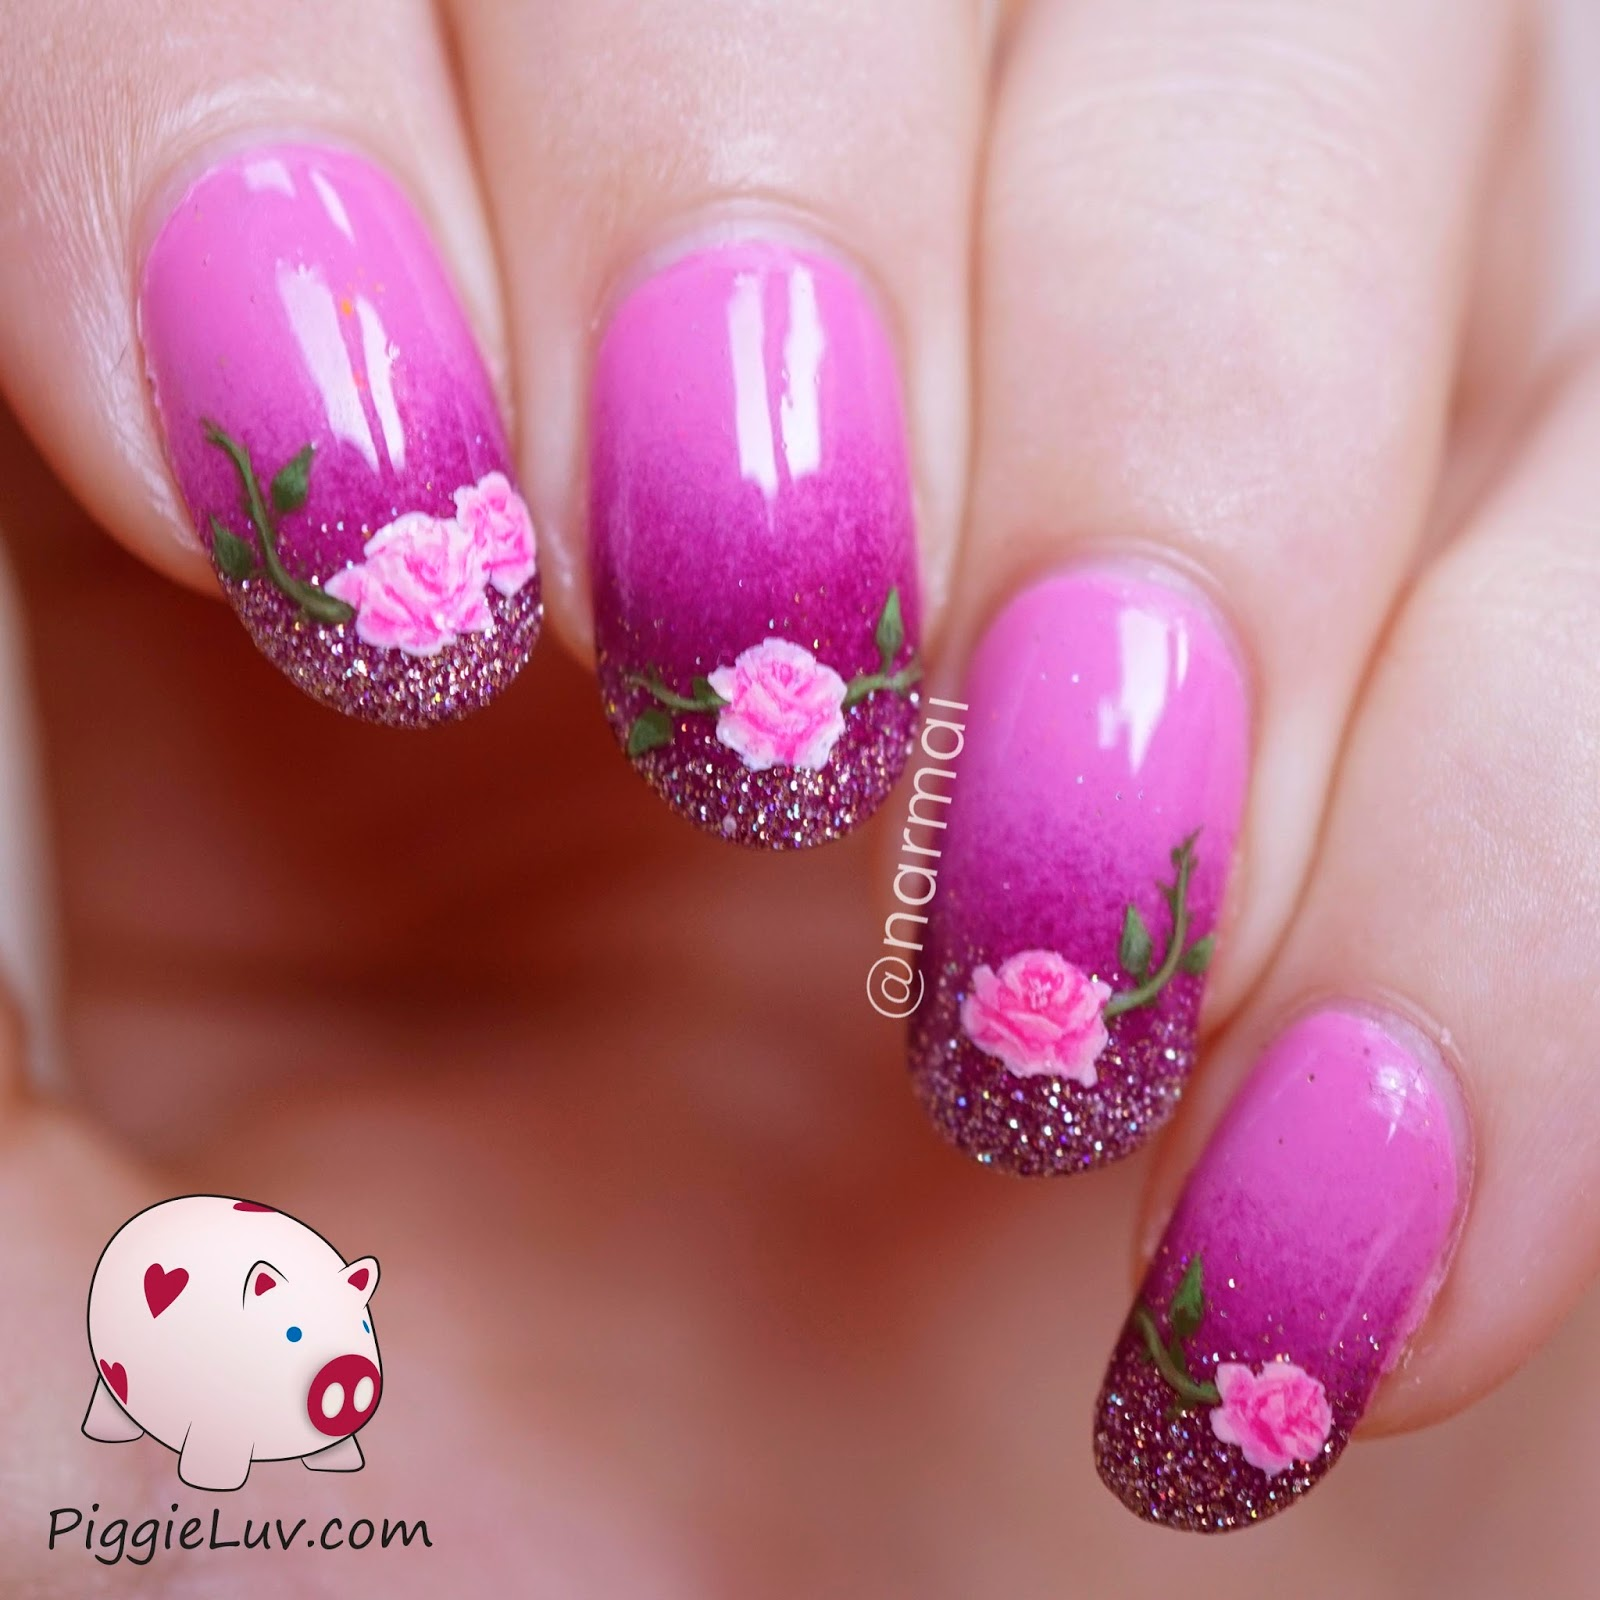 PiggieLuv: Freehand roses nail art for Valentine\'s Day